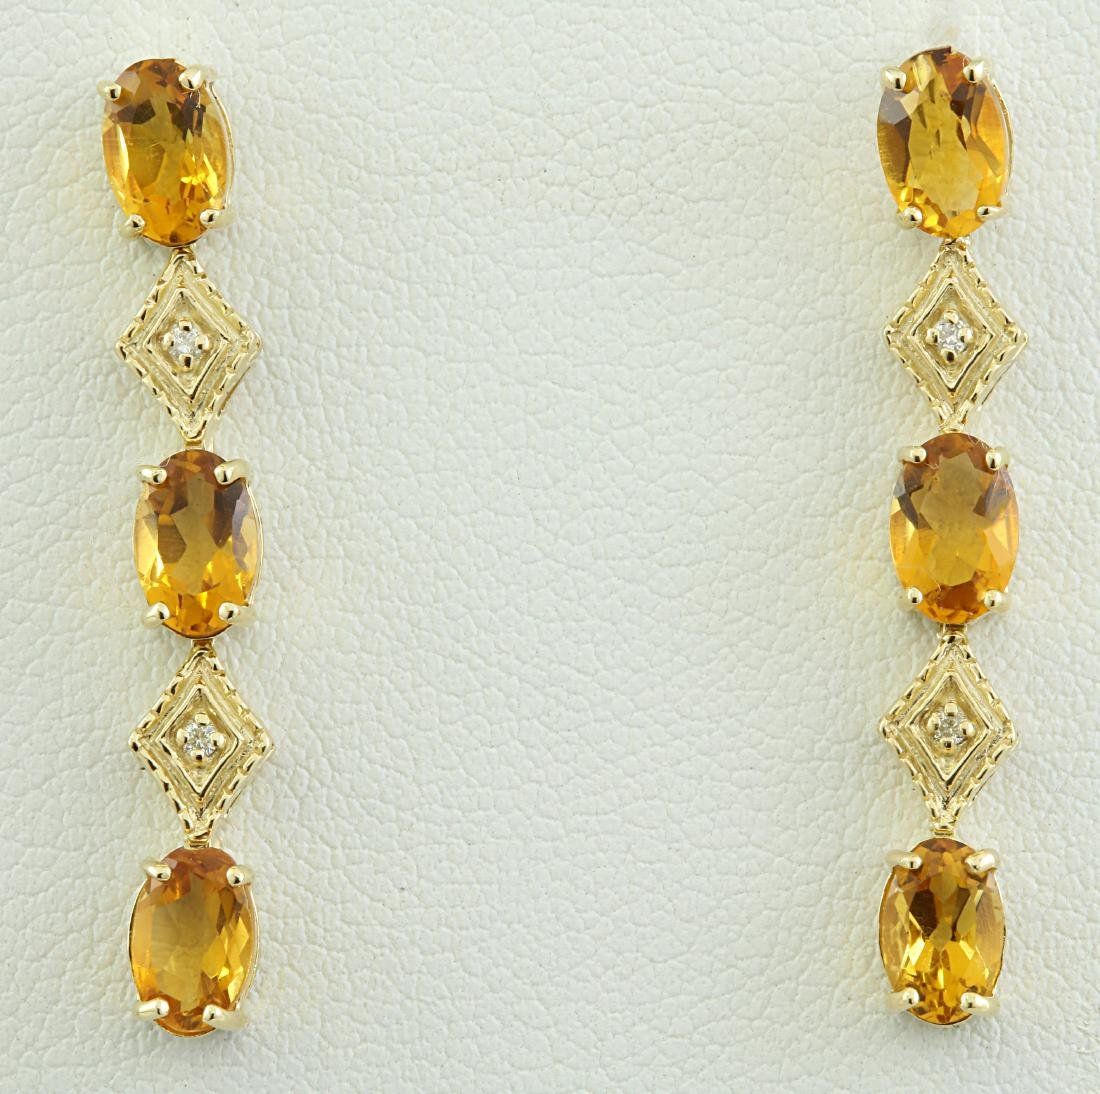 2.65 Carat Citrine 14K Yellow Gold Diamond Earrings